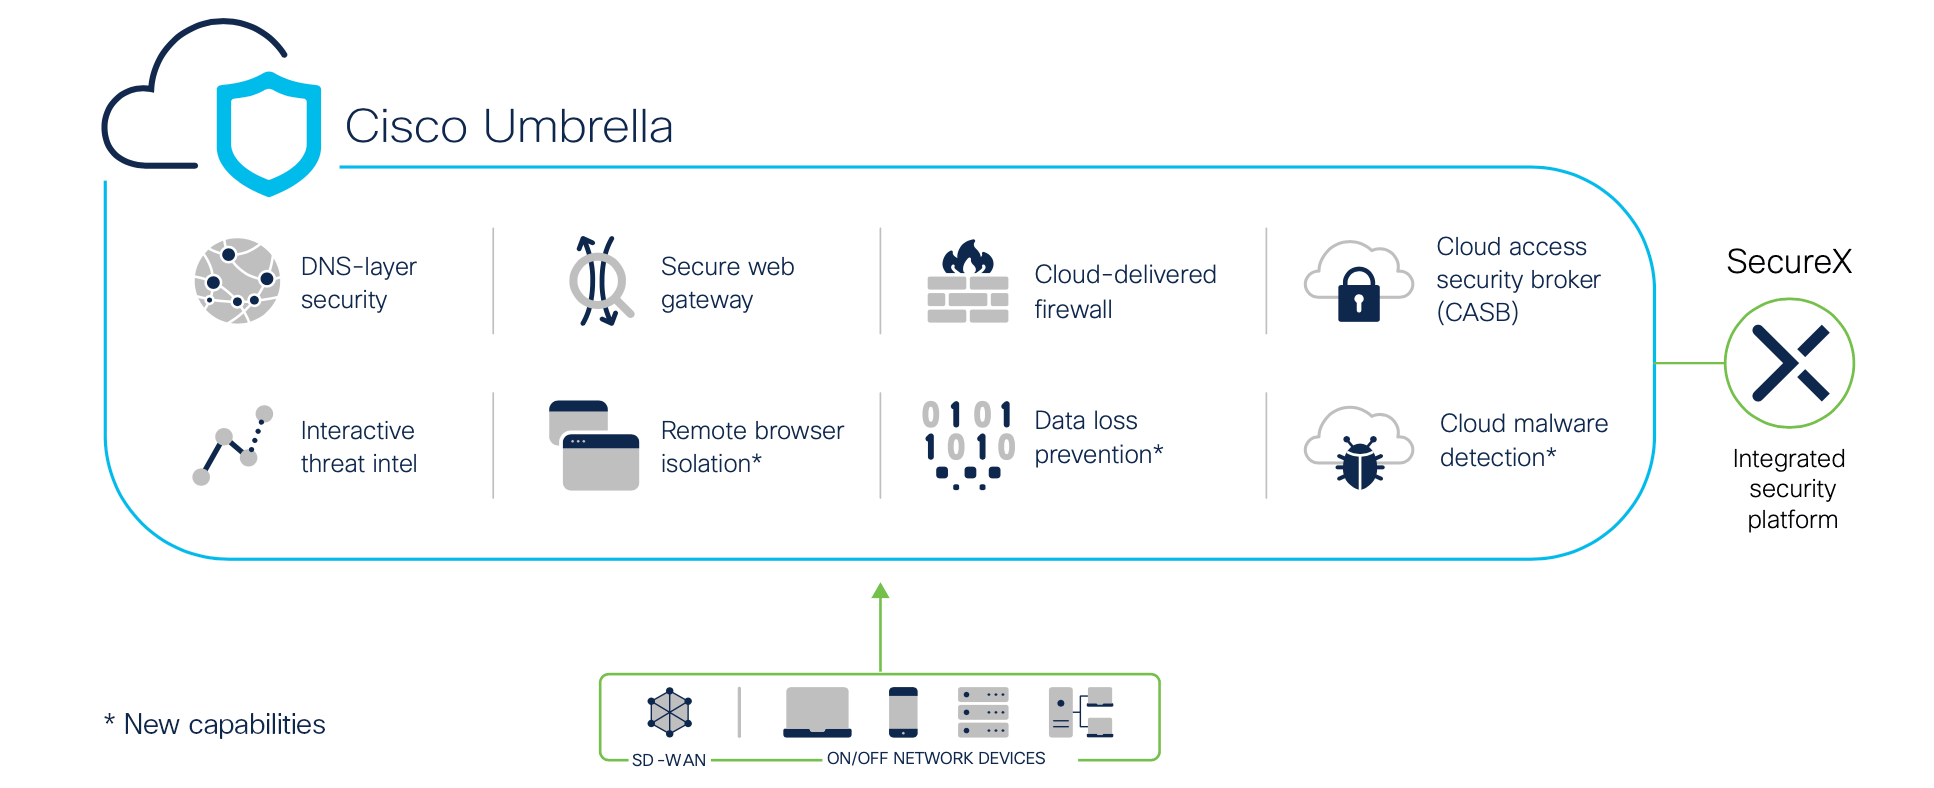 A graphic showing the different components of Cisco Umbrella: DNS-layer security, interactive threat intel, secure web gateway, remote browser isolation, cloud-delivered firewall, data loss prevention, cloud access security broker (CASB), and cloud malware detection. The graphic indicates that all of this is integrated into the Secure X integrated security platform, and it protects both on and off network devices connected to a SD-WAN.